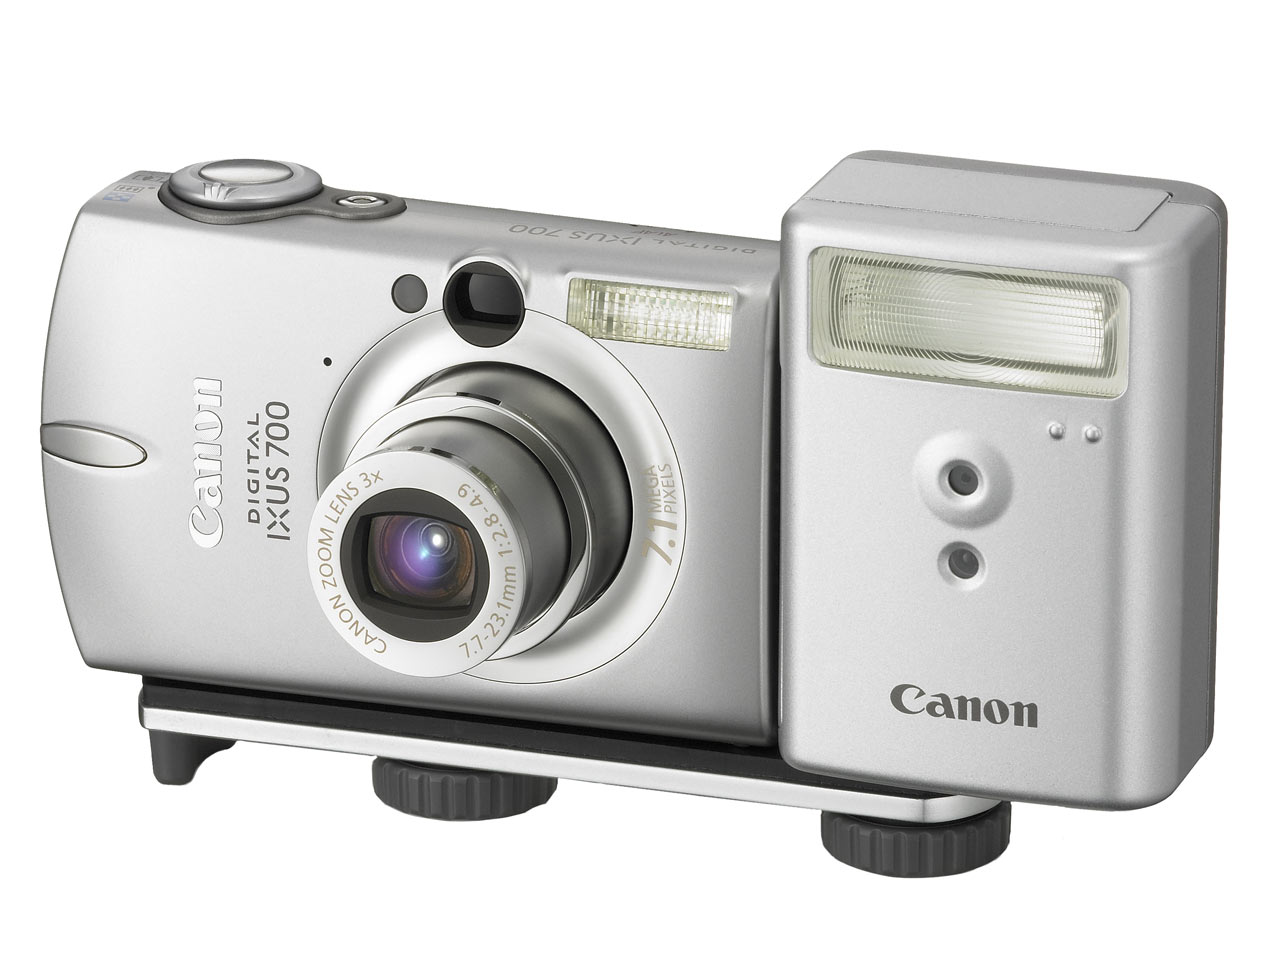 canon powershot sd500 digital photography review rh dpreview com SD500 Pull Staton Canon PowerShot SD500 Charger